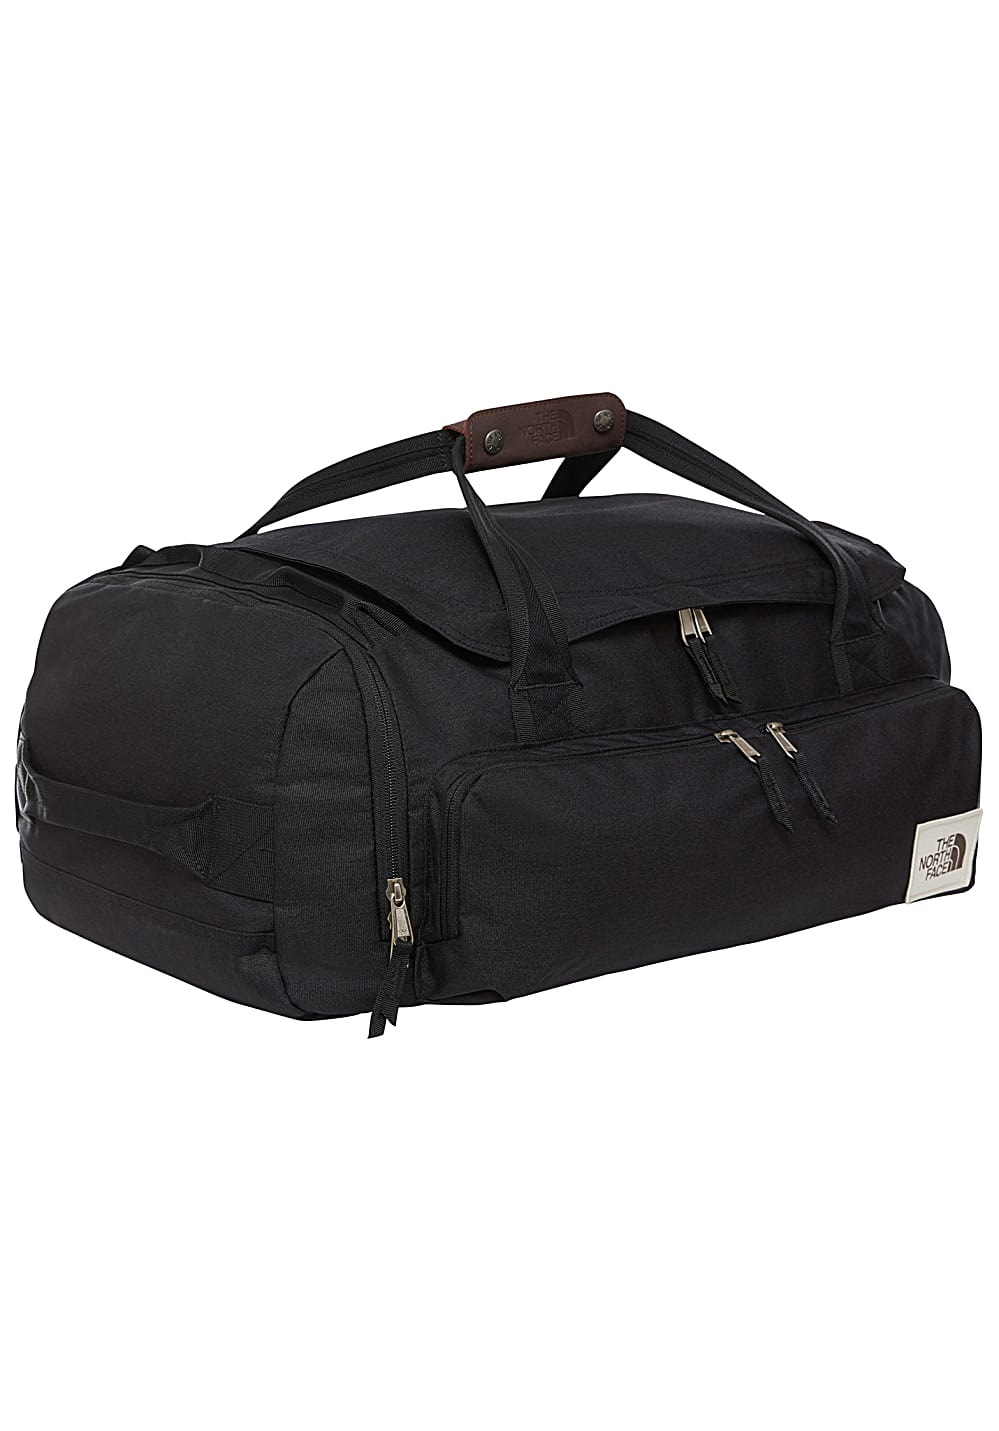 0e202ecd82 ... THE NORTH FACE Berkeley M - Gym Bag - Black. Back to Overview. 1; 2; 3;  4. Previous. Next